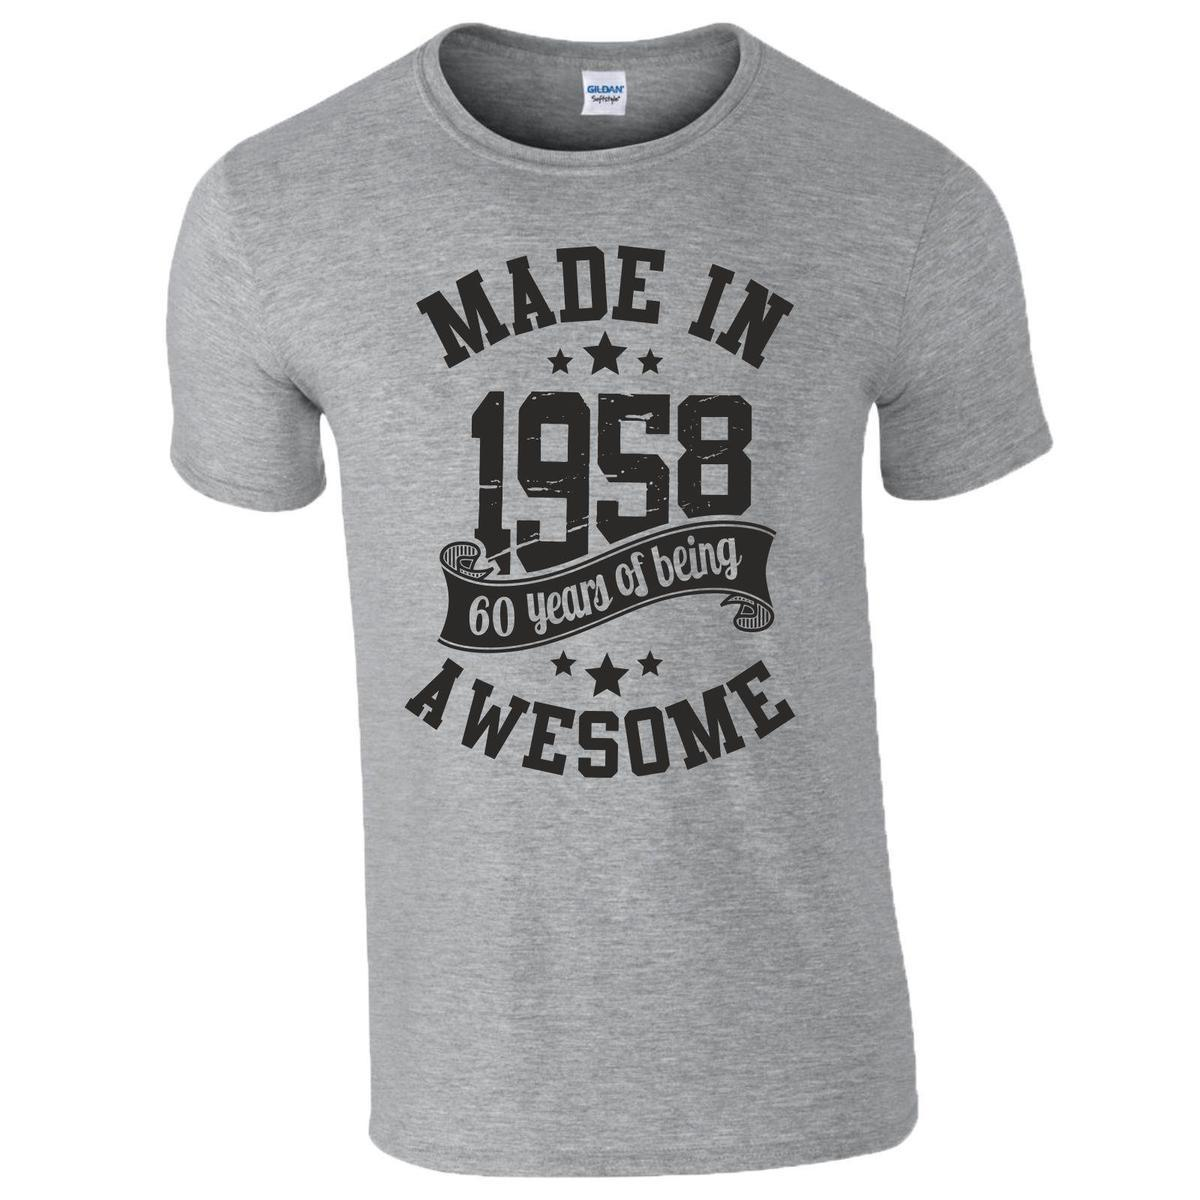 60th Birthday Gift T Shirt Made In 1958 Being Awesome Age 60 Years Mens Ladies Cool Tee Shirts Designs Web From Yuxin0004 138